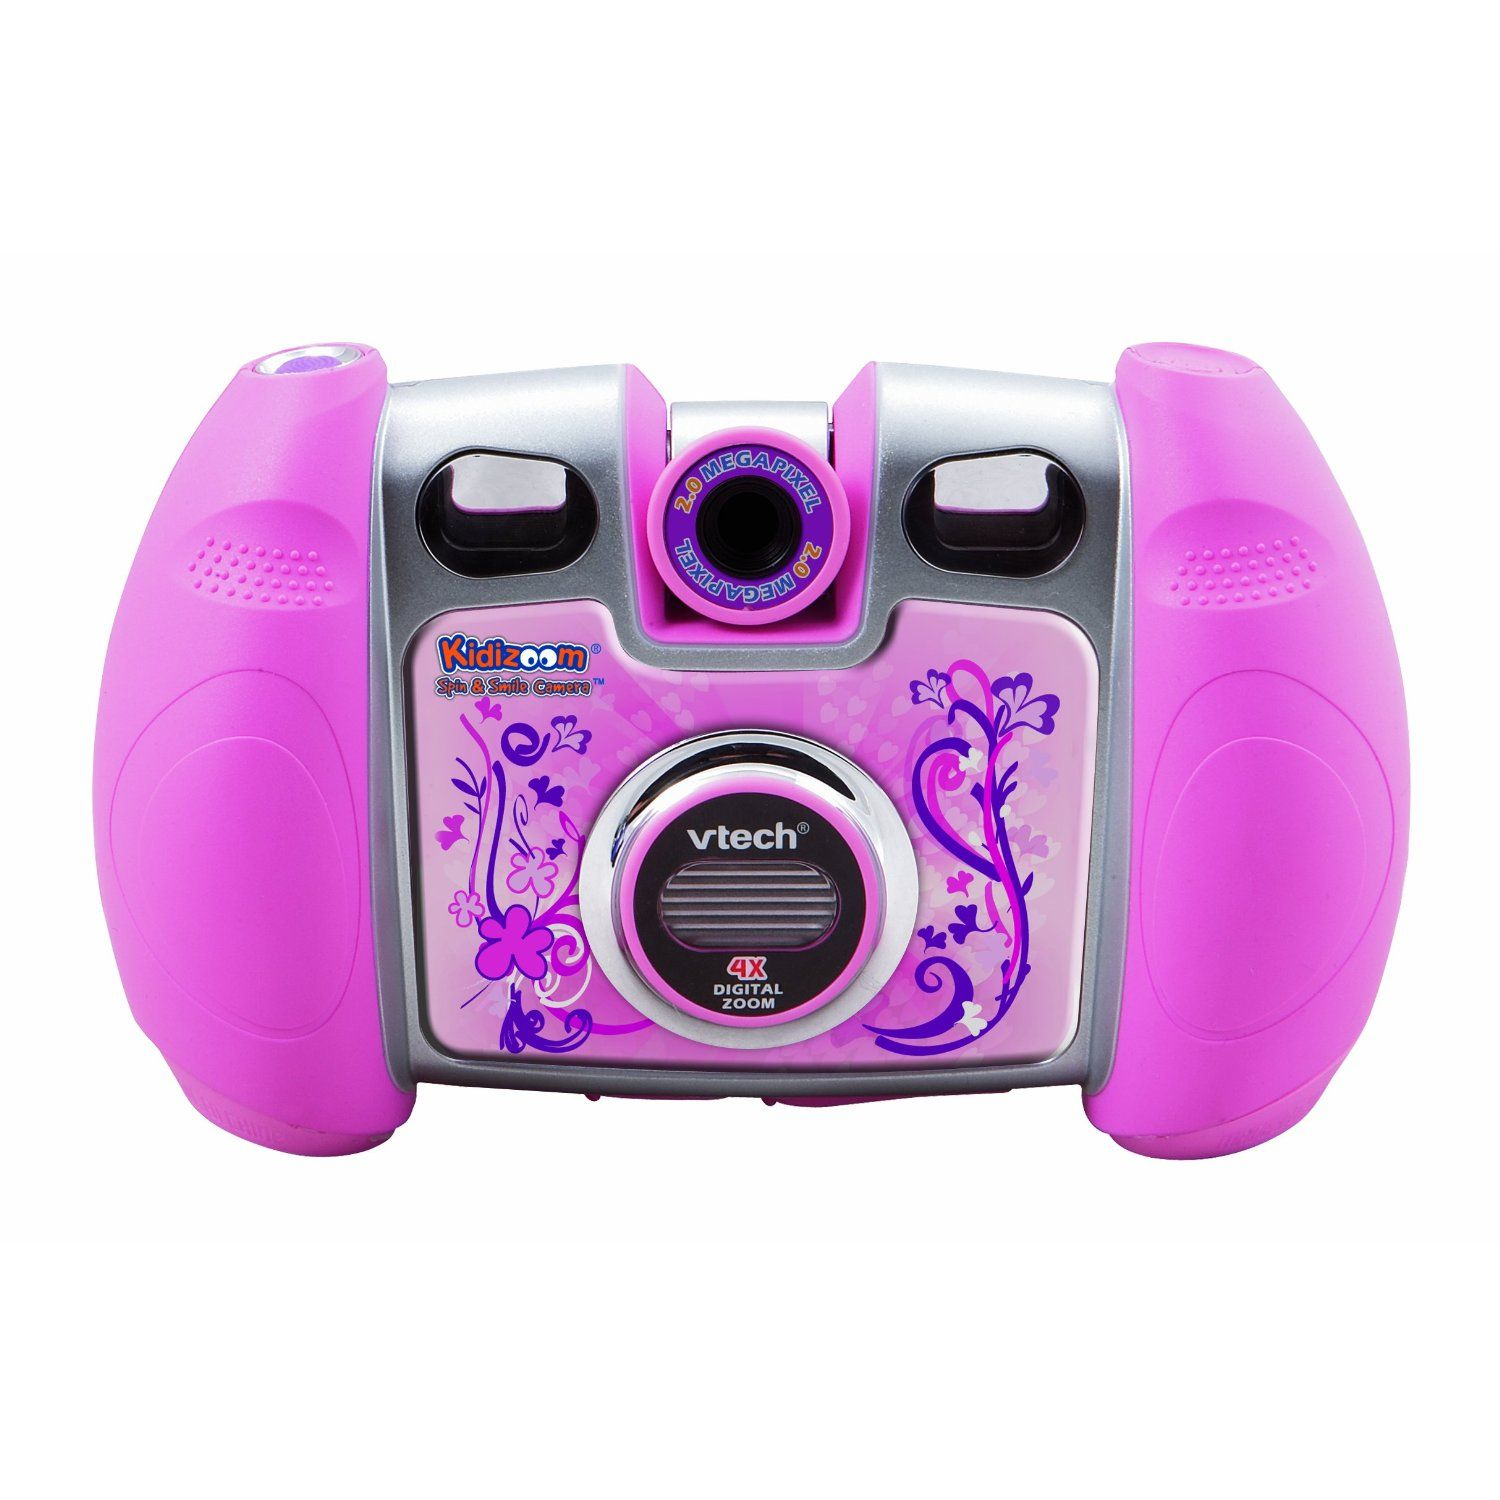 Google Gadgets: Toys For Kids Age 10 For Girls - Google Search